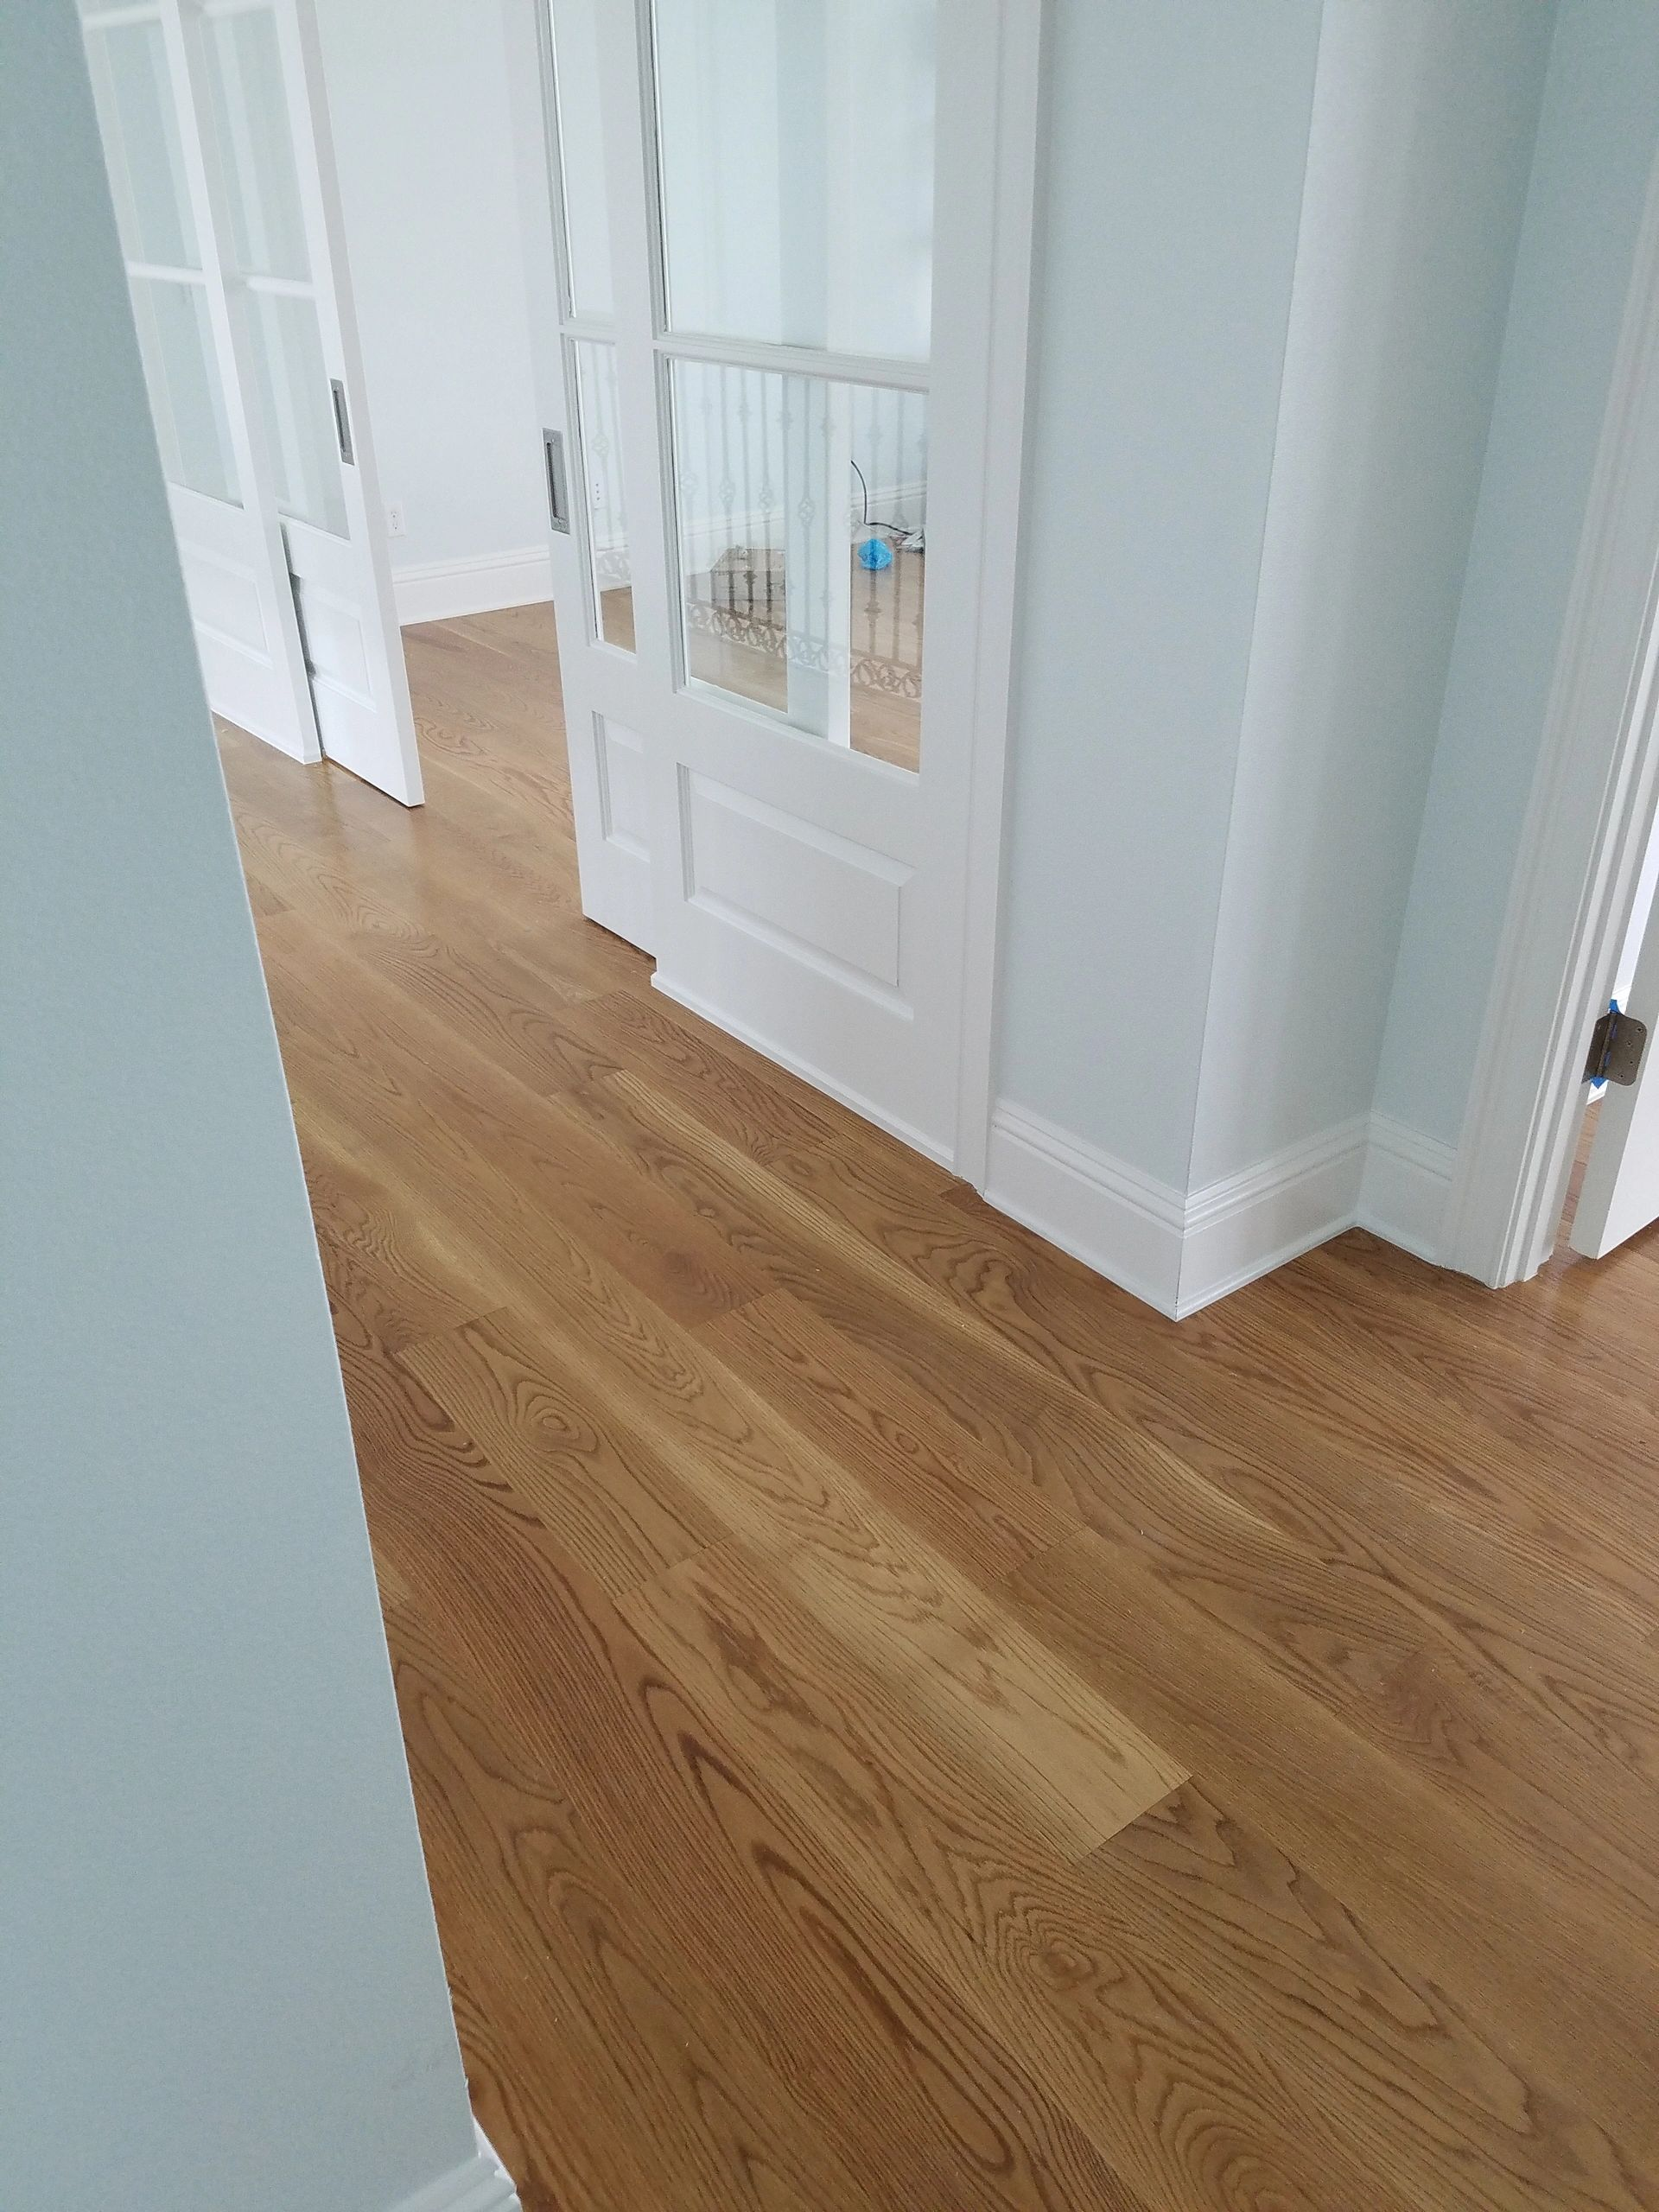 floors cosson collections flooring hardwood products engineered chambord lifestyle bracieux floorzz cera collection bella